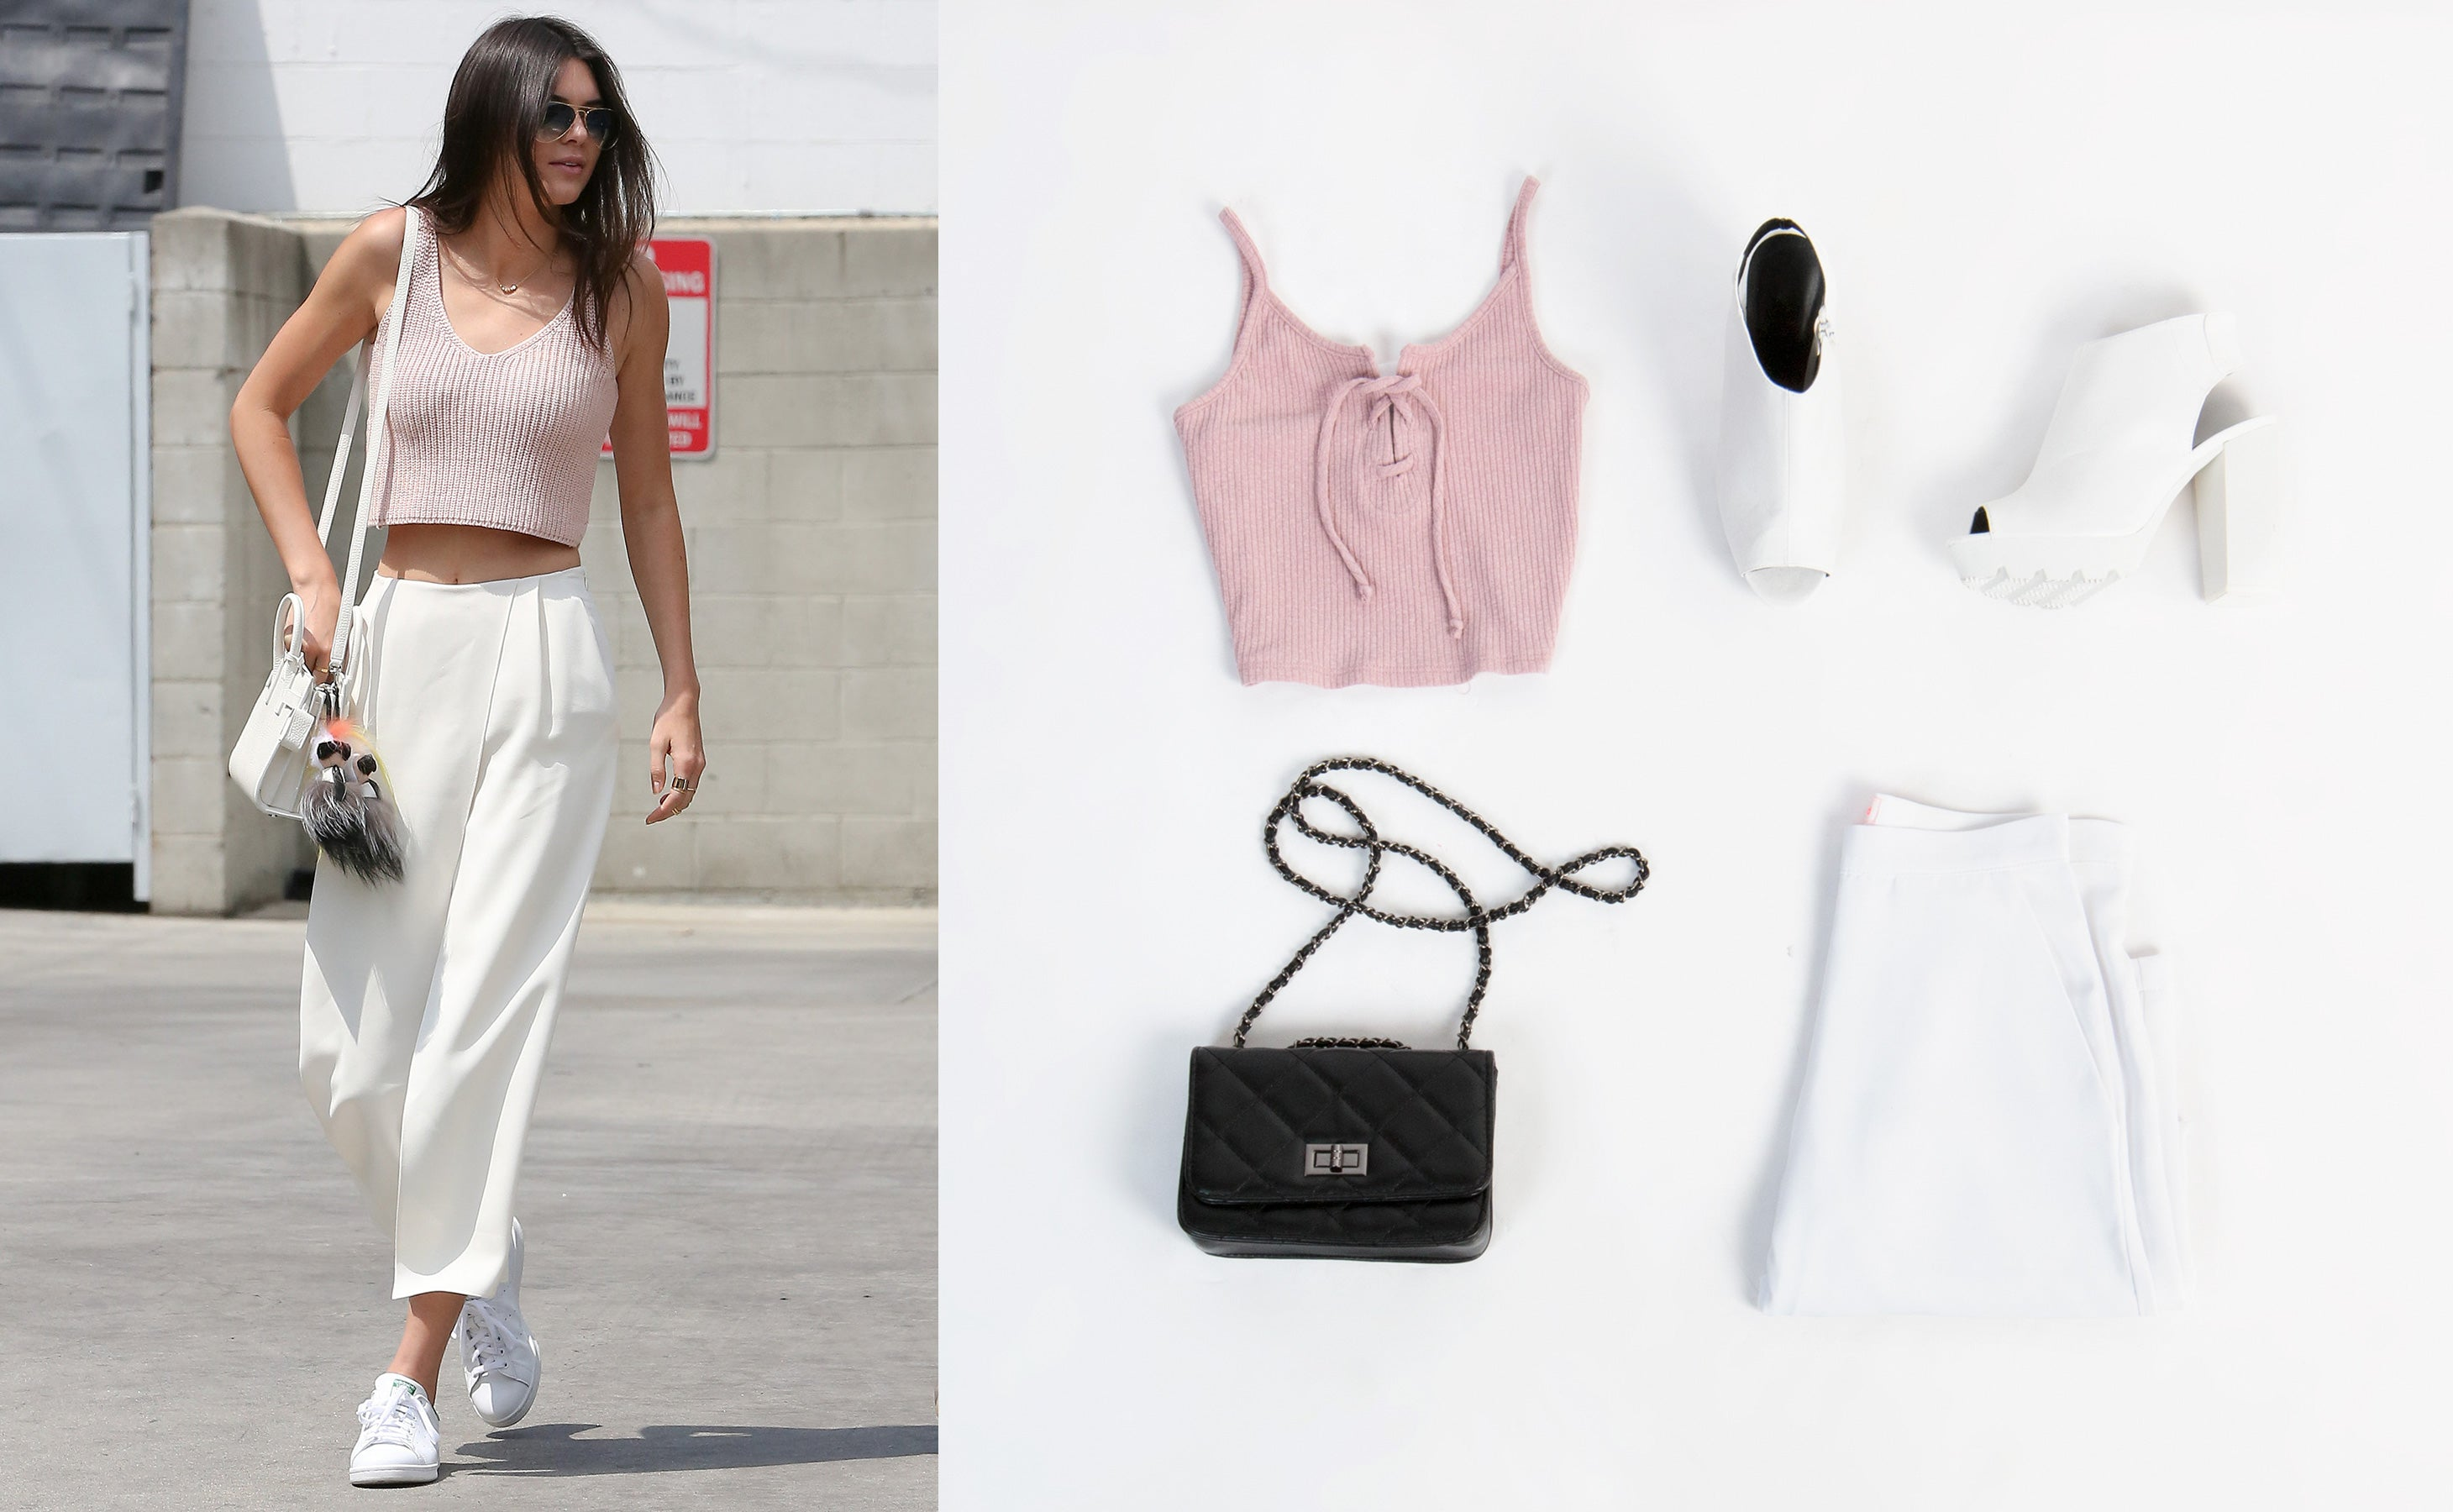 Kendall Jenner Street Style Outfit: Valentine's Day Date Night Look